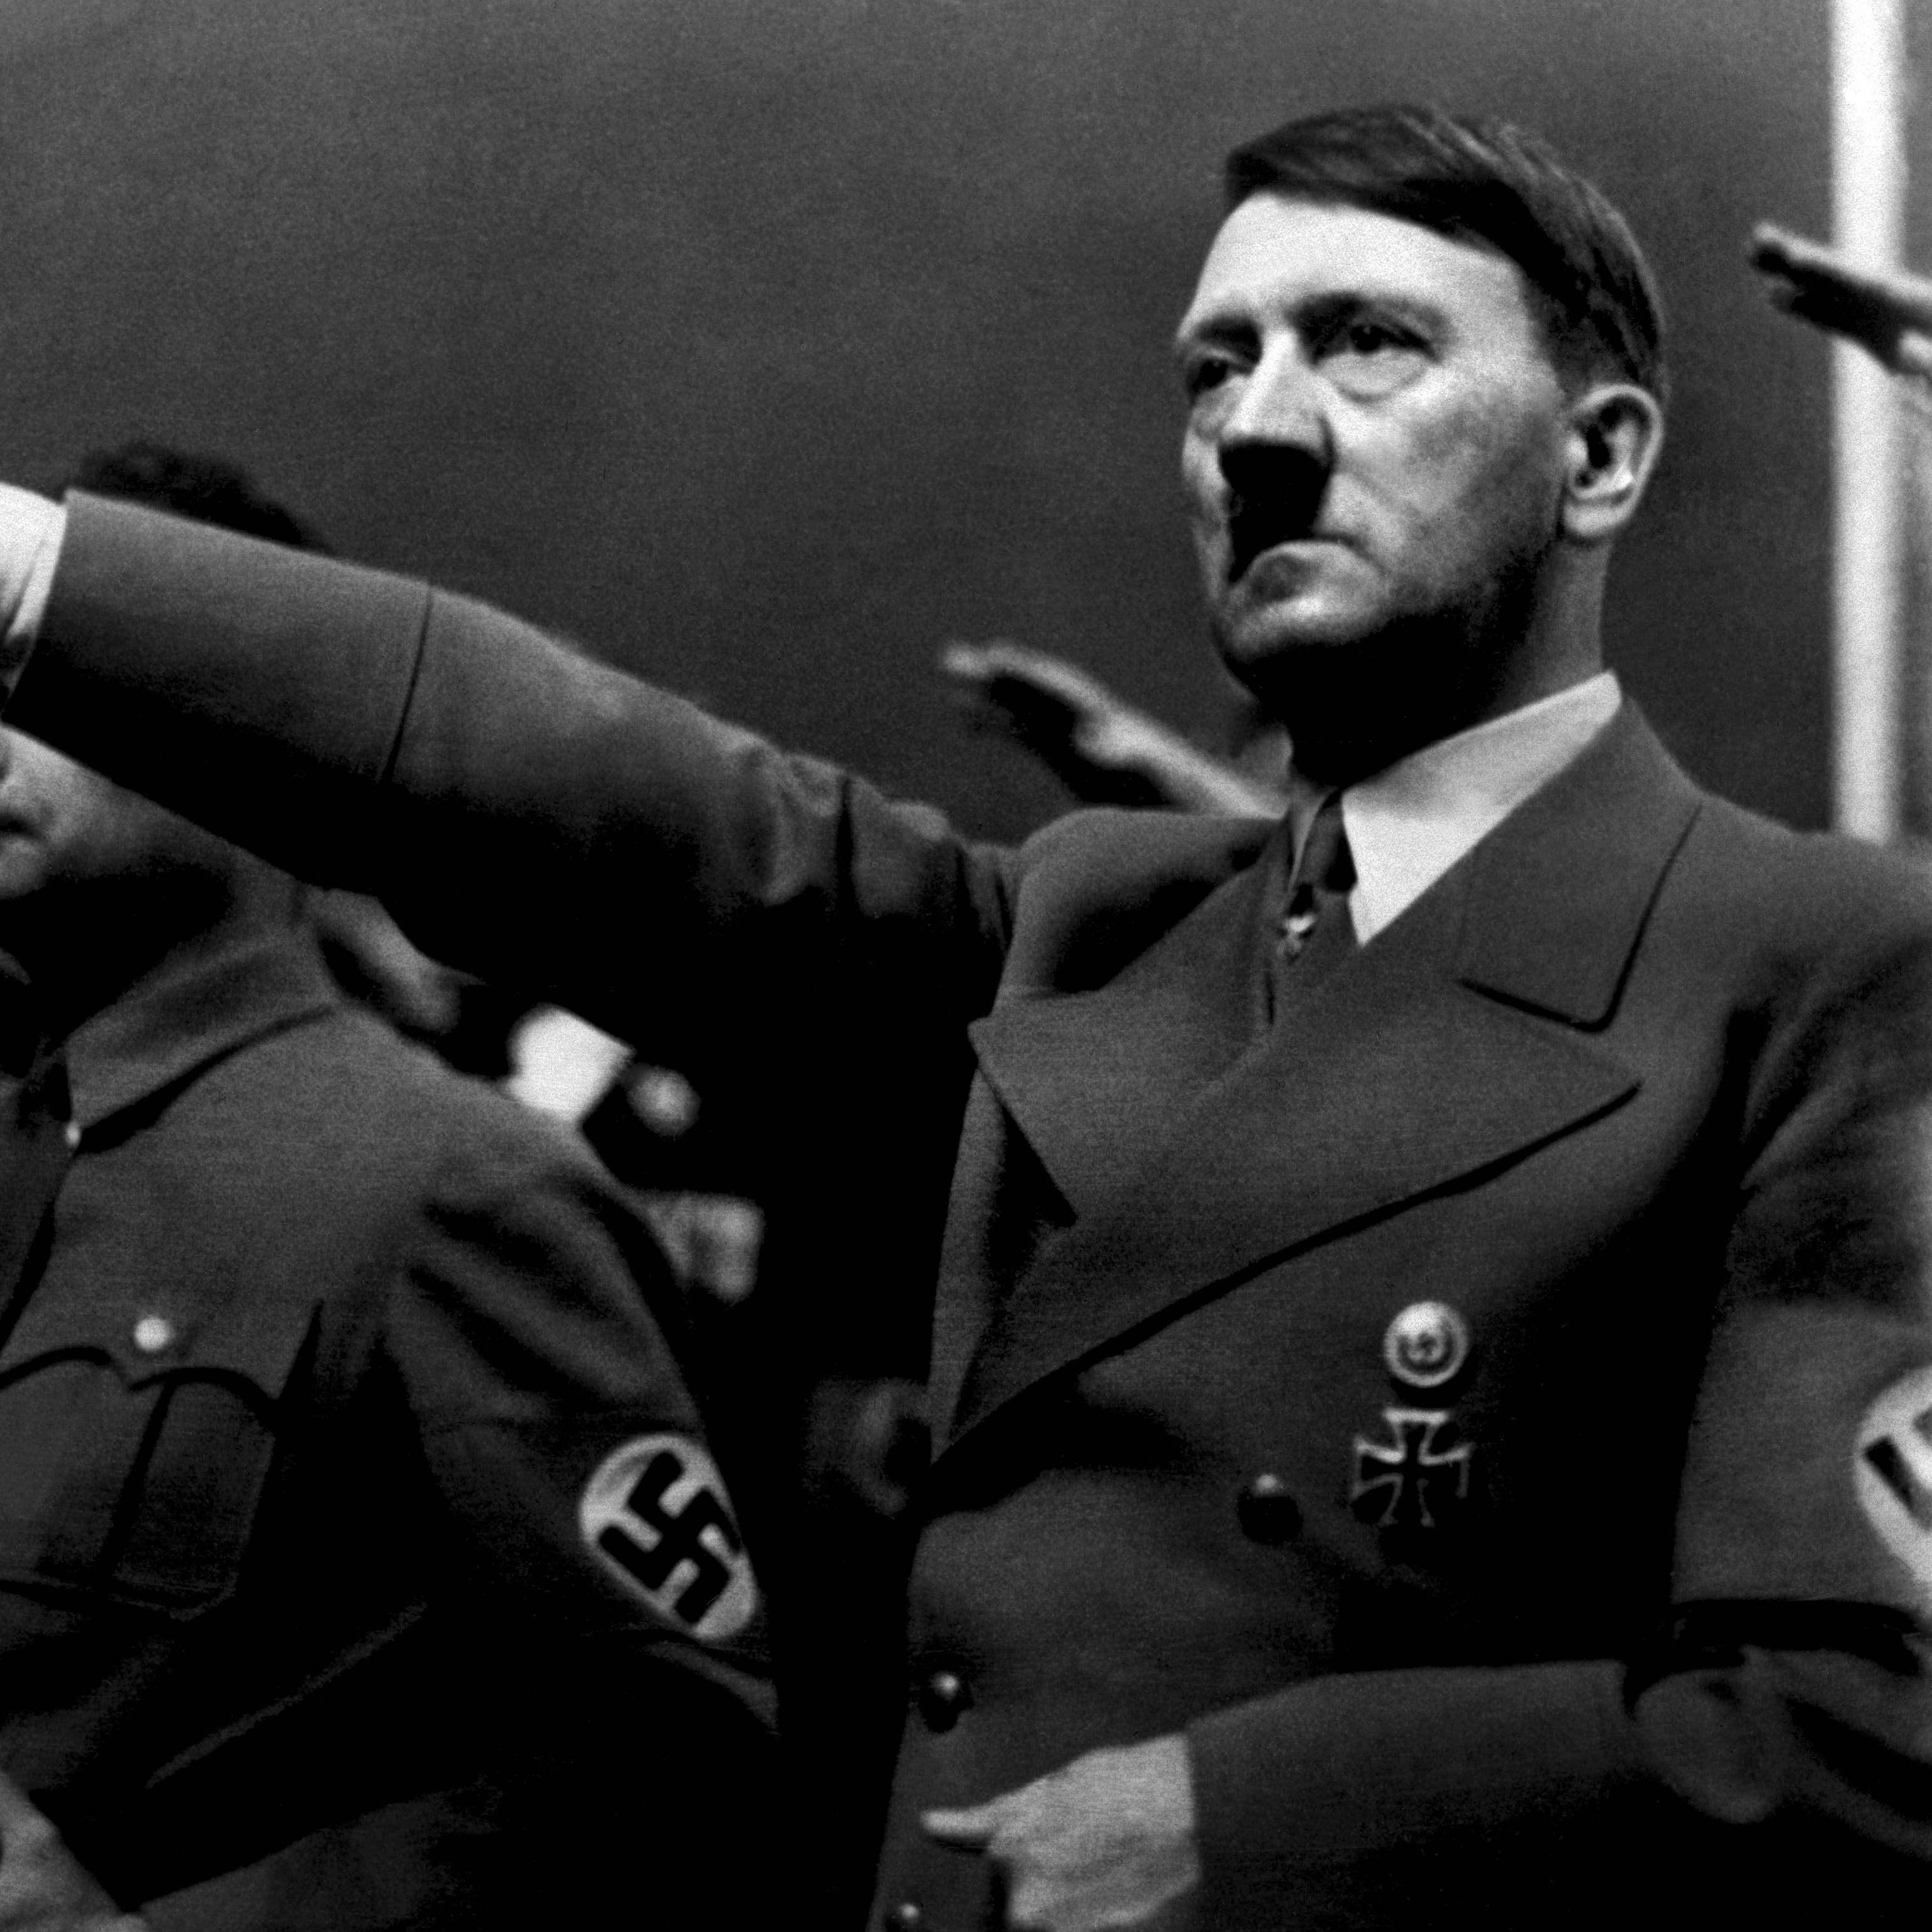 Fact check: Hitler being Time 'Man of the Year' in 1938 was not an ...